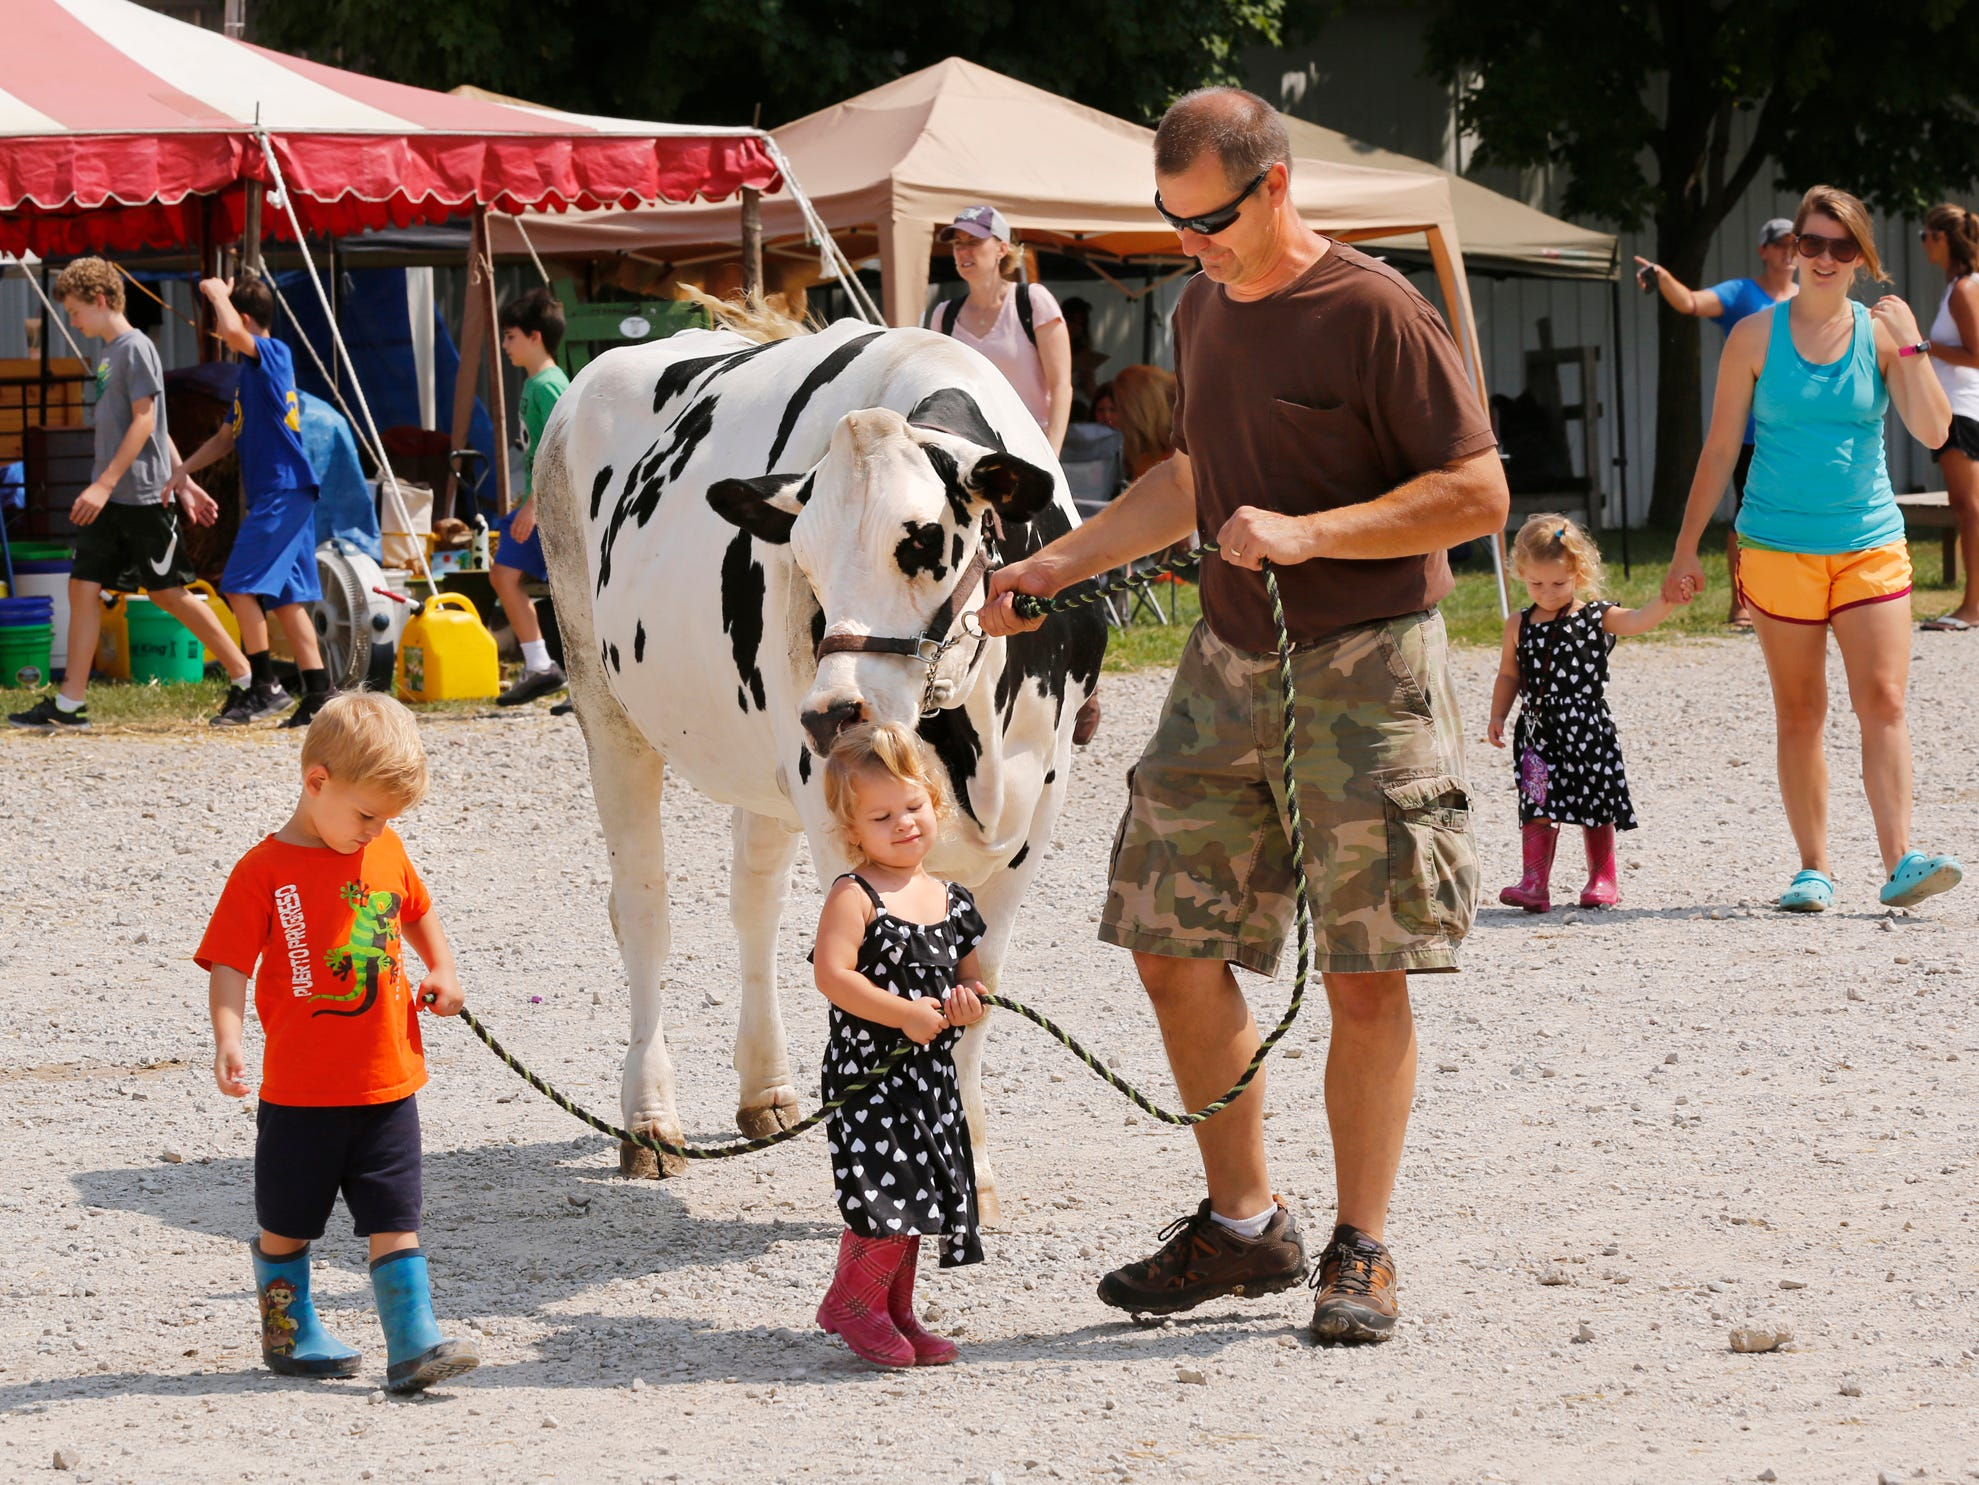 Dennis Barker is assisted by his grandchildren Elyja Wright, 3, and Hadley Wright, 2, as he walks a Holstein heifer at the Tippecanoe County 4-H Fair Tuesday, July 24, 2018, in Lafayette. The Holstein is being shown at the fair by Barker's daughter Grace